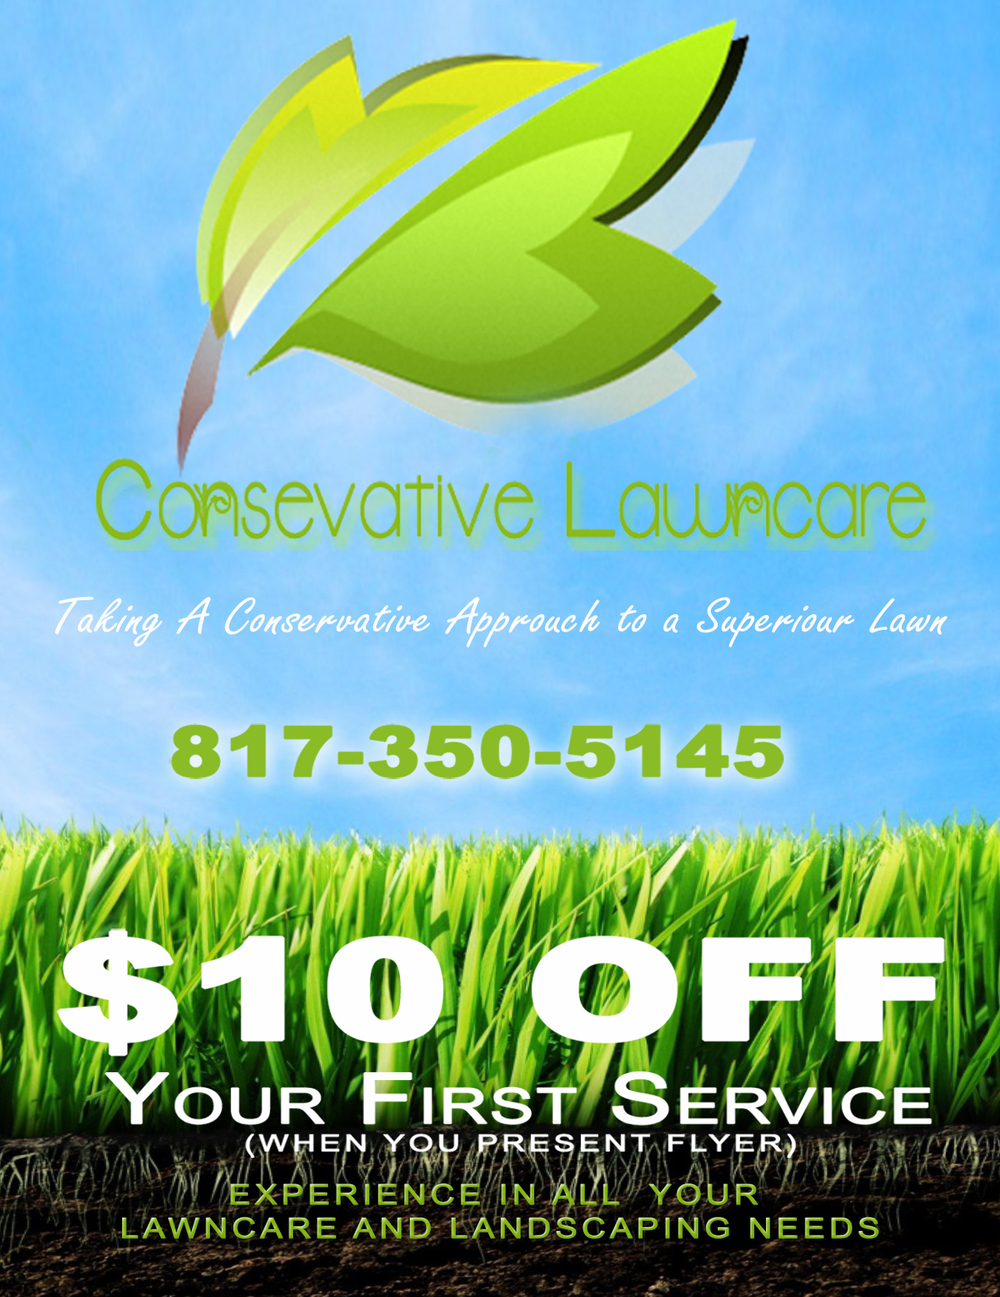 Consevative Lawncare FLYERS 2 - Copy.jpg